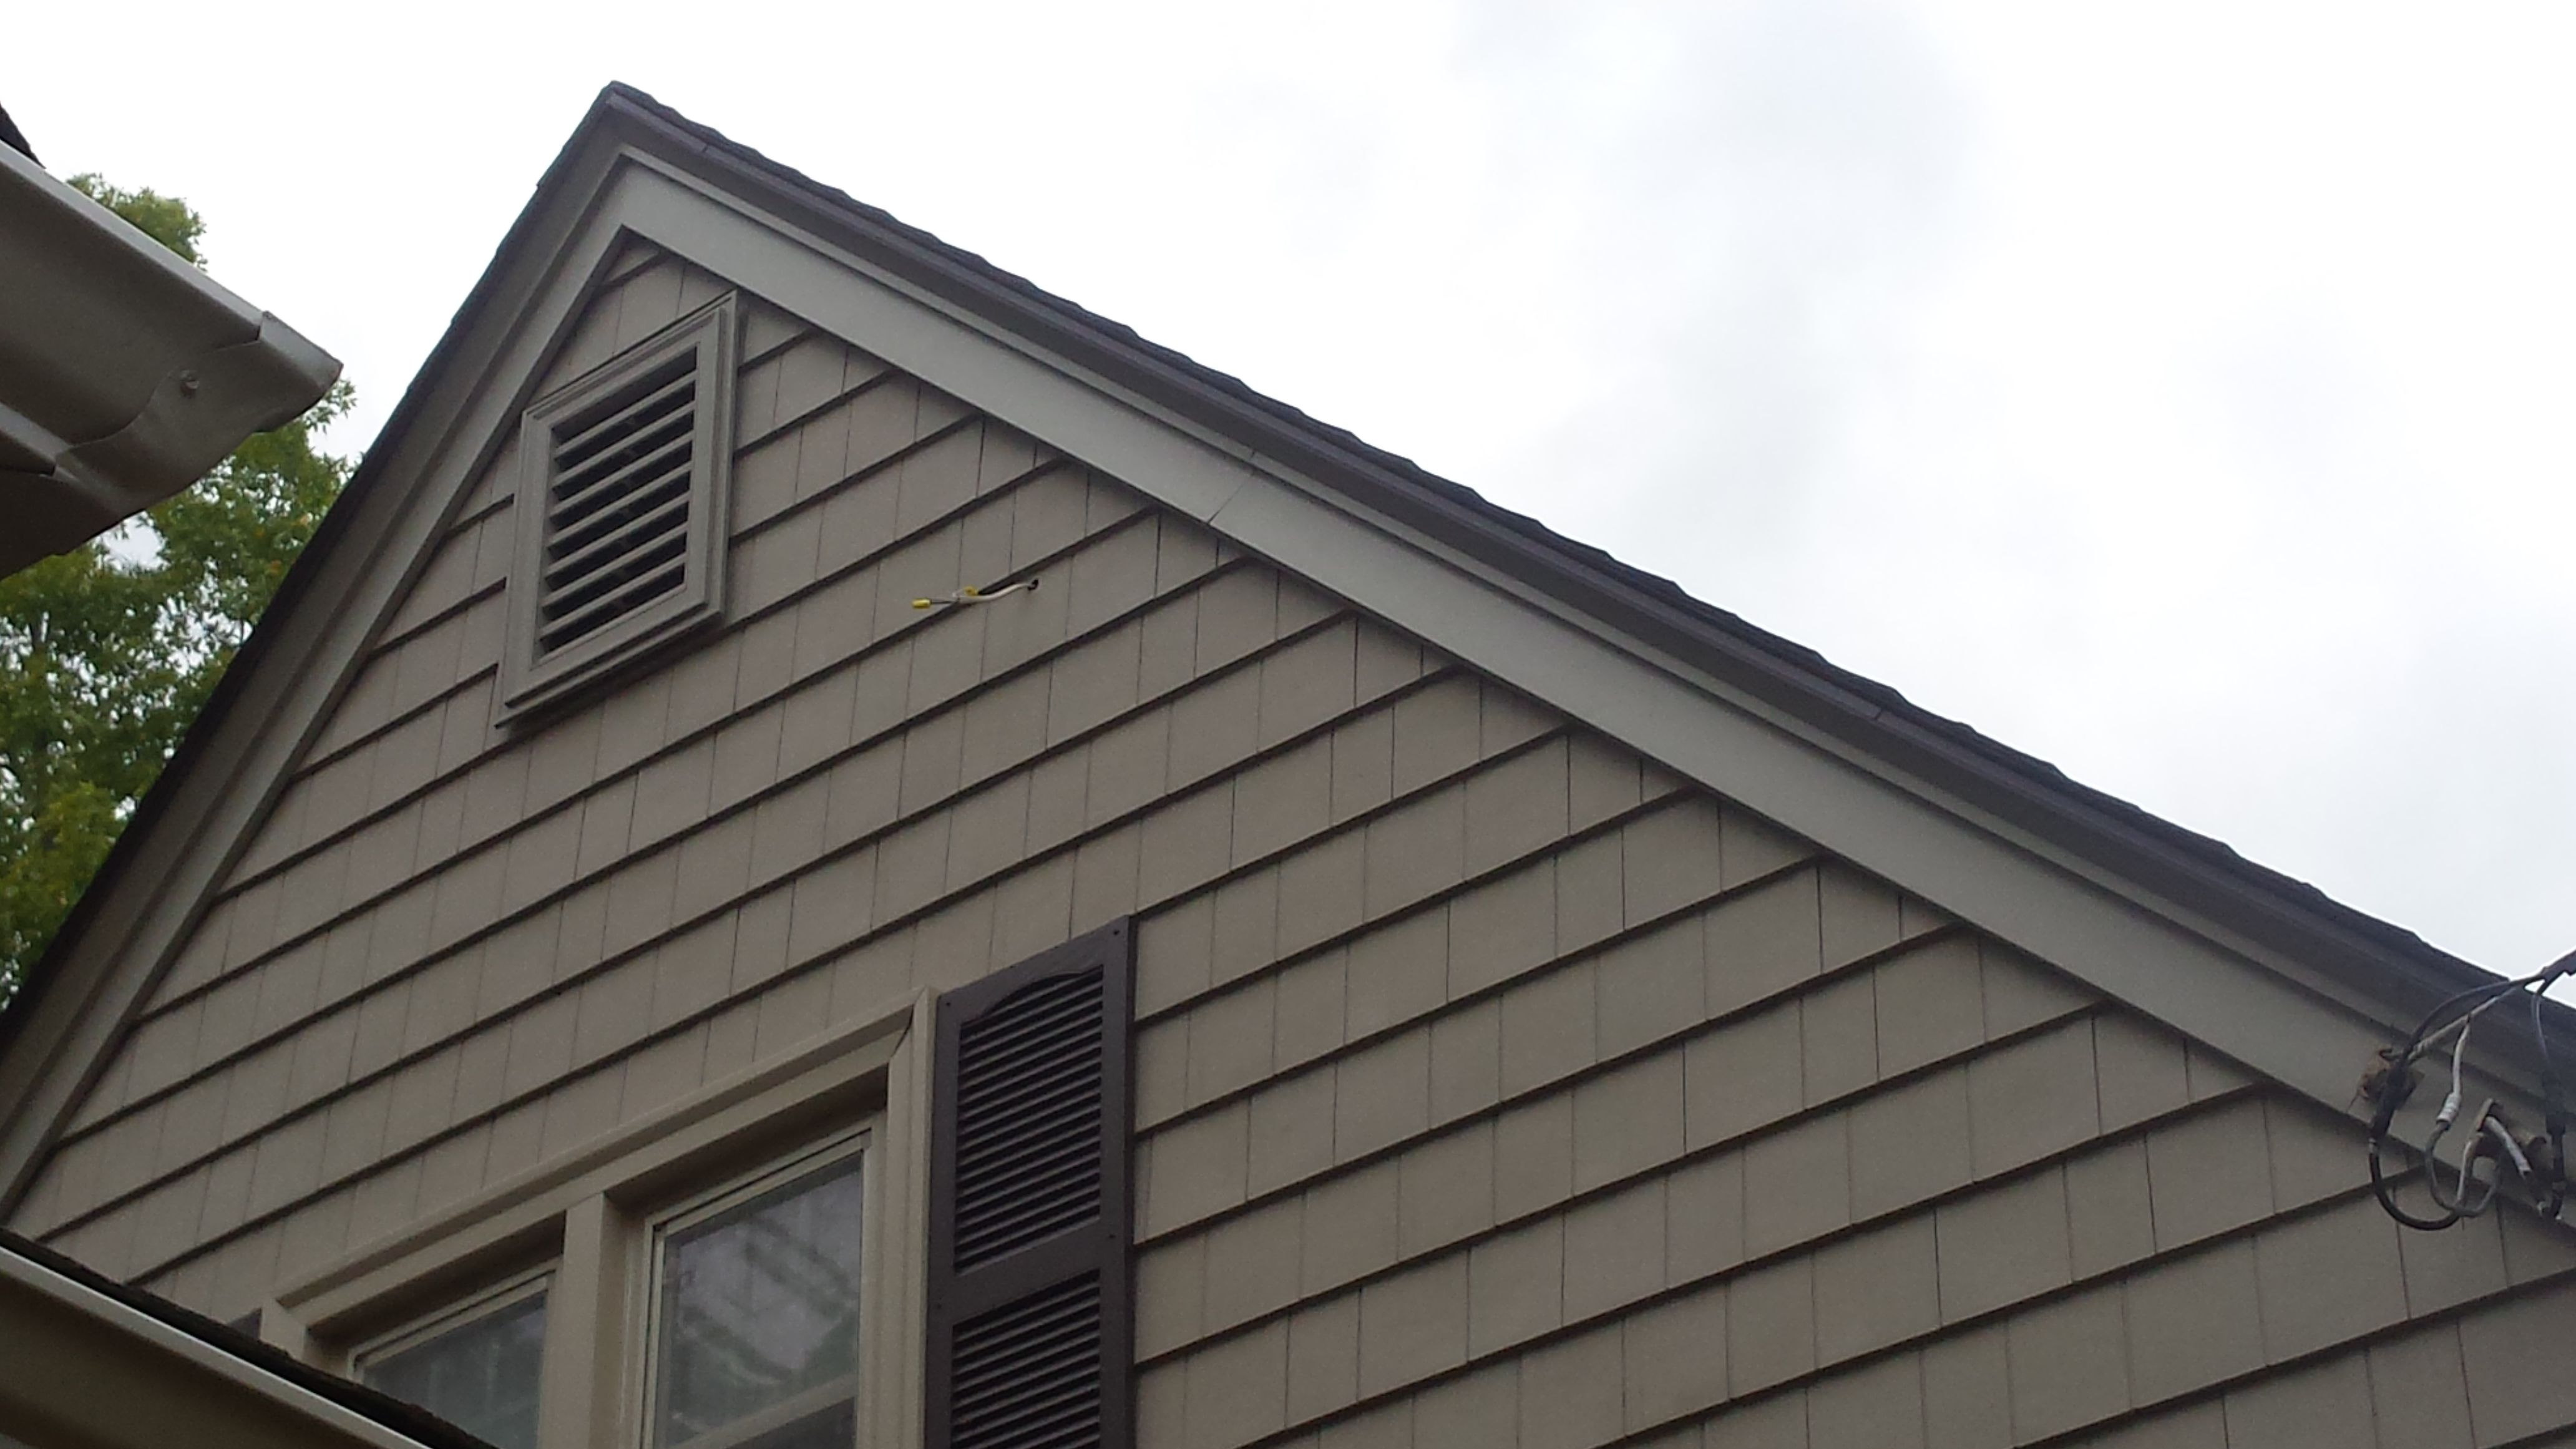 Certainteed Cedar Impressions Vinyl Siding In Natural Clay With Wicker Trim Rustic Houses Exterior Siding Options Vinyl Siding